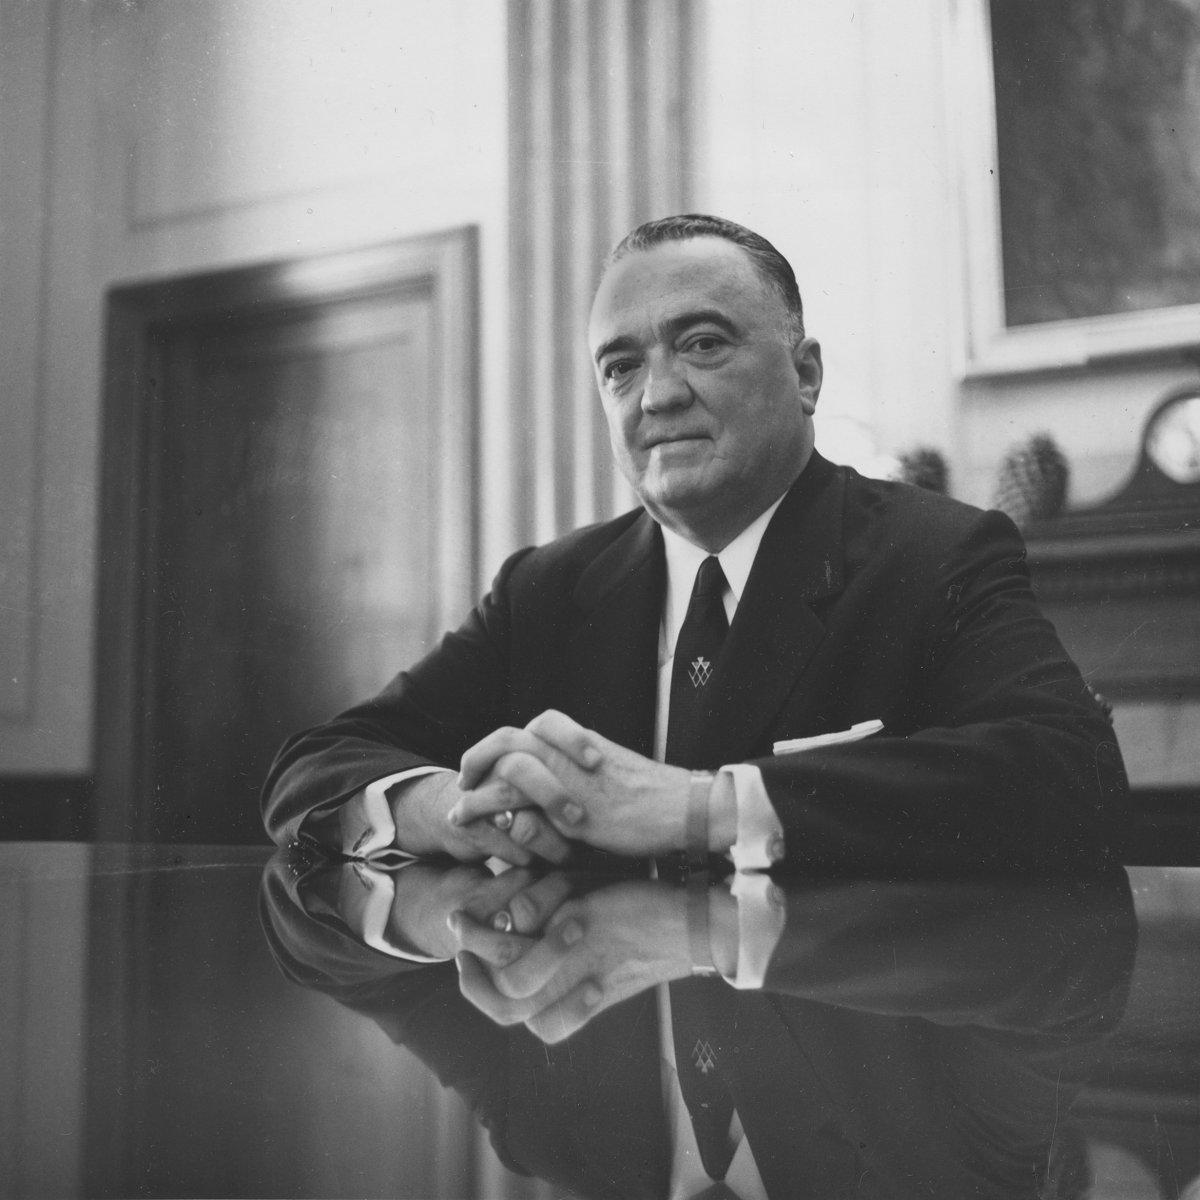 John Edgar Hoover, director of the Federal Bureau of Investigation, is shown in this May 1959 photograph. (AP Photo)